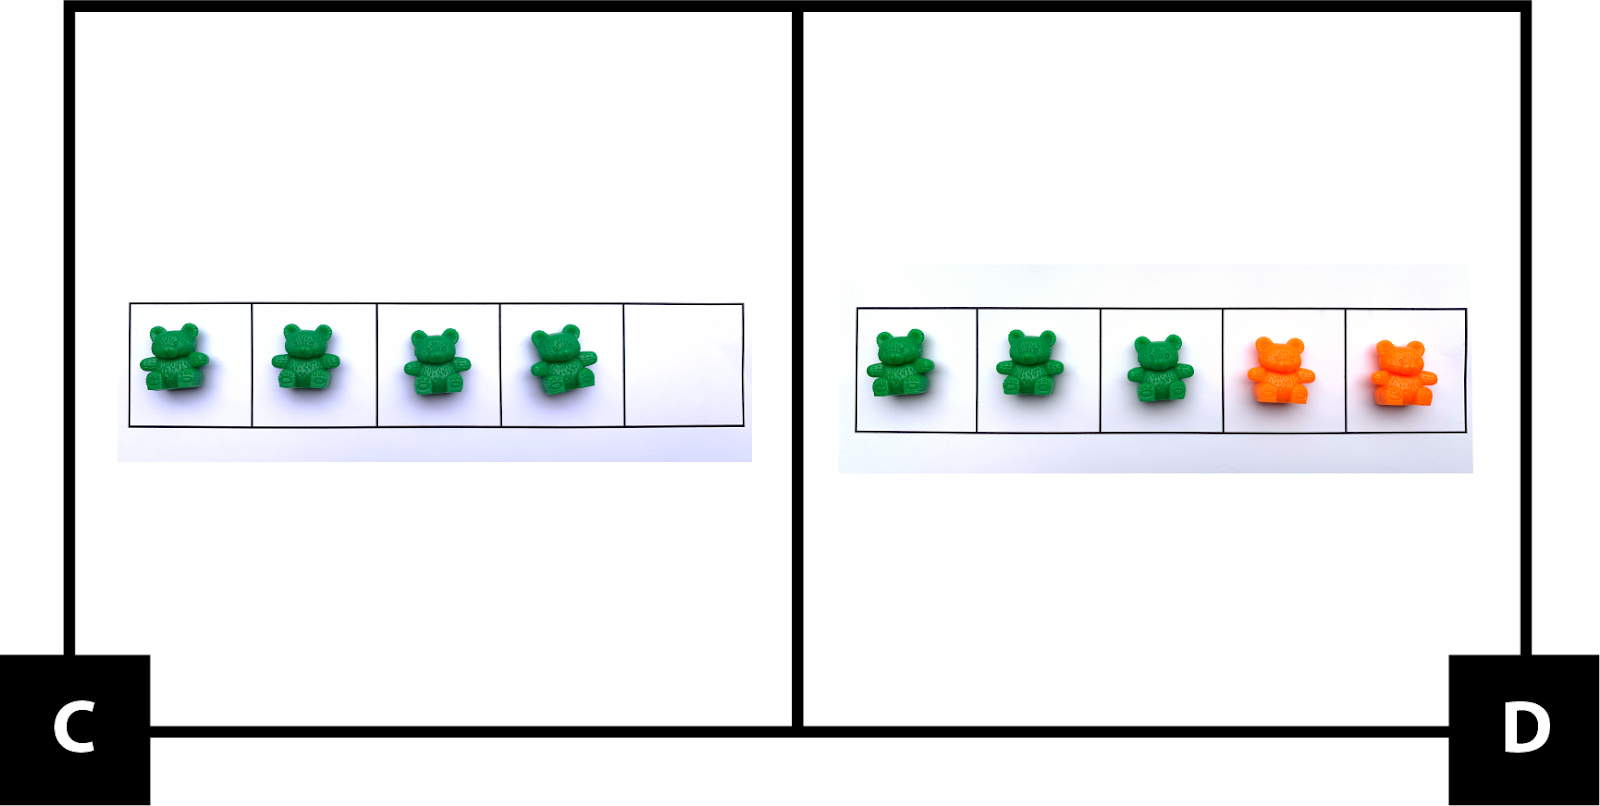 A: A five-frame with 4 green teddy bears and 1 empty box. B: A five-frame with 3 green teddy bears and 2 orange bears.